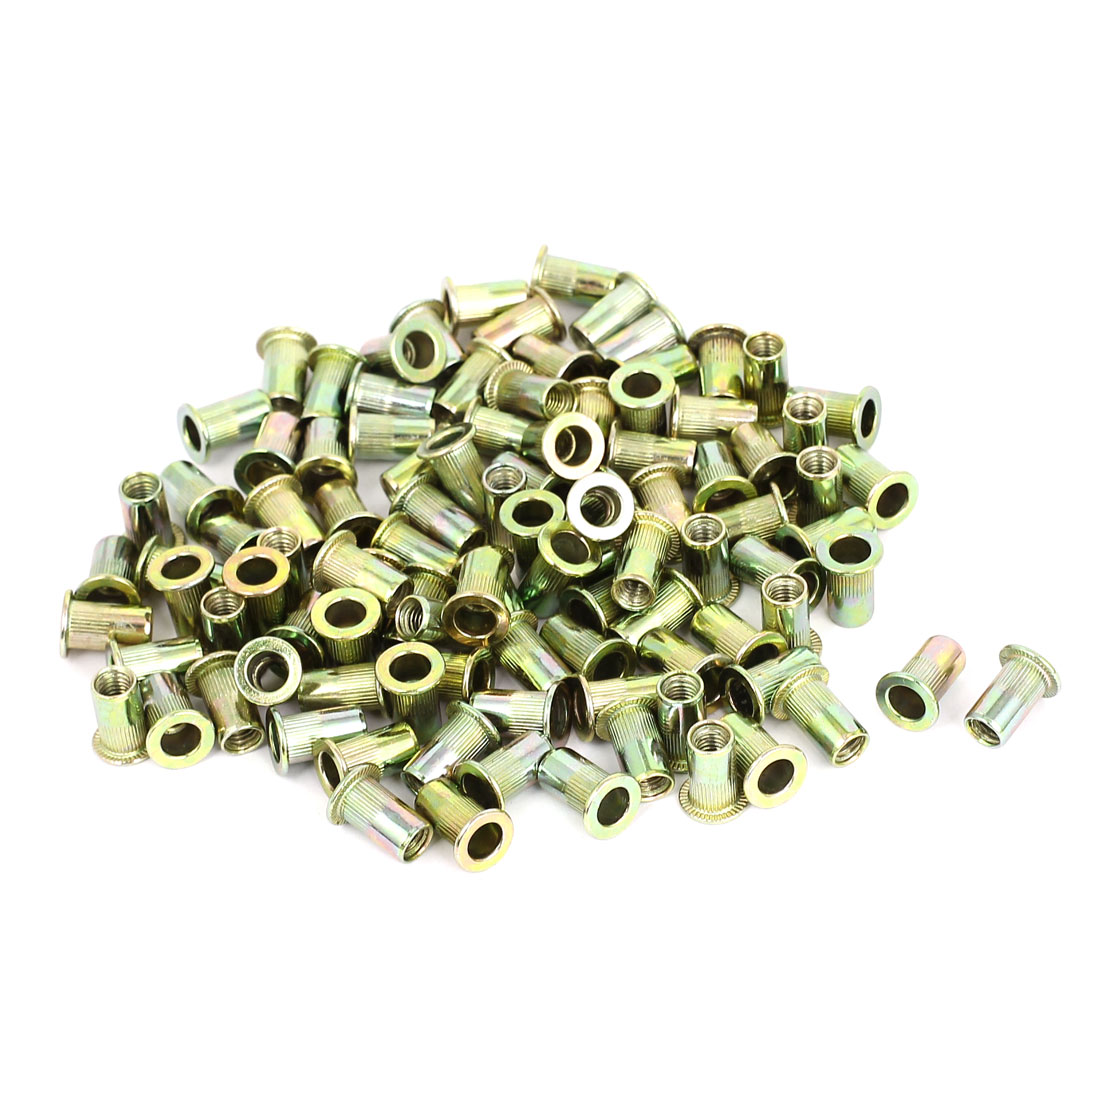 100 Pcs M5 Threaded Countersunk Head Knurled Blind Rivet Nuts Nutserts